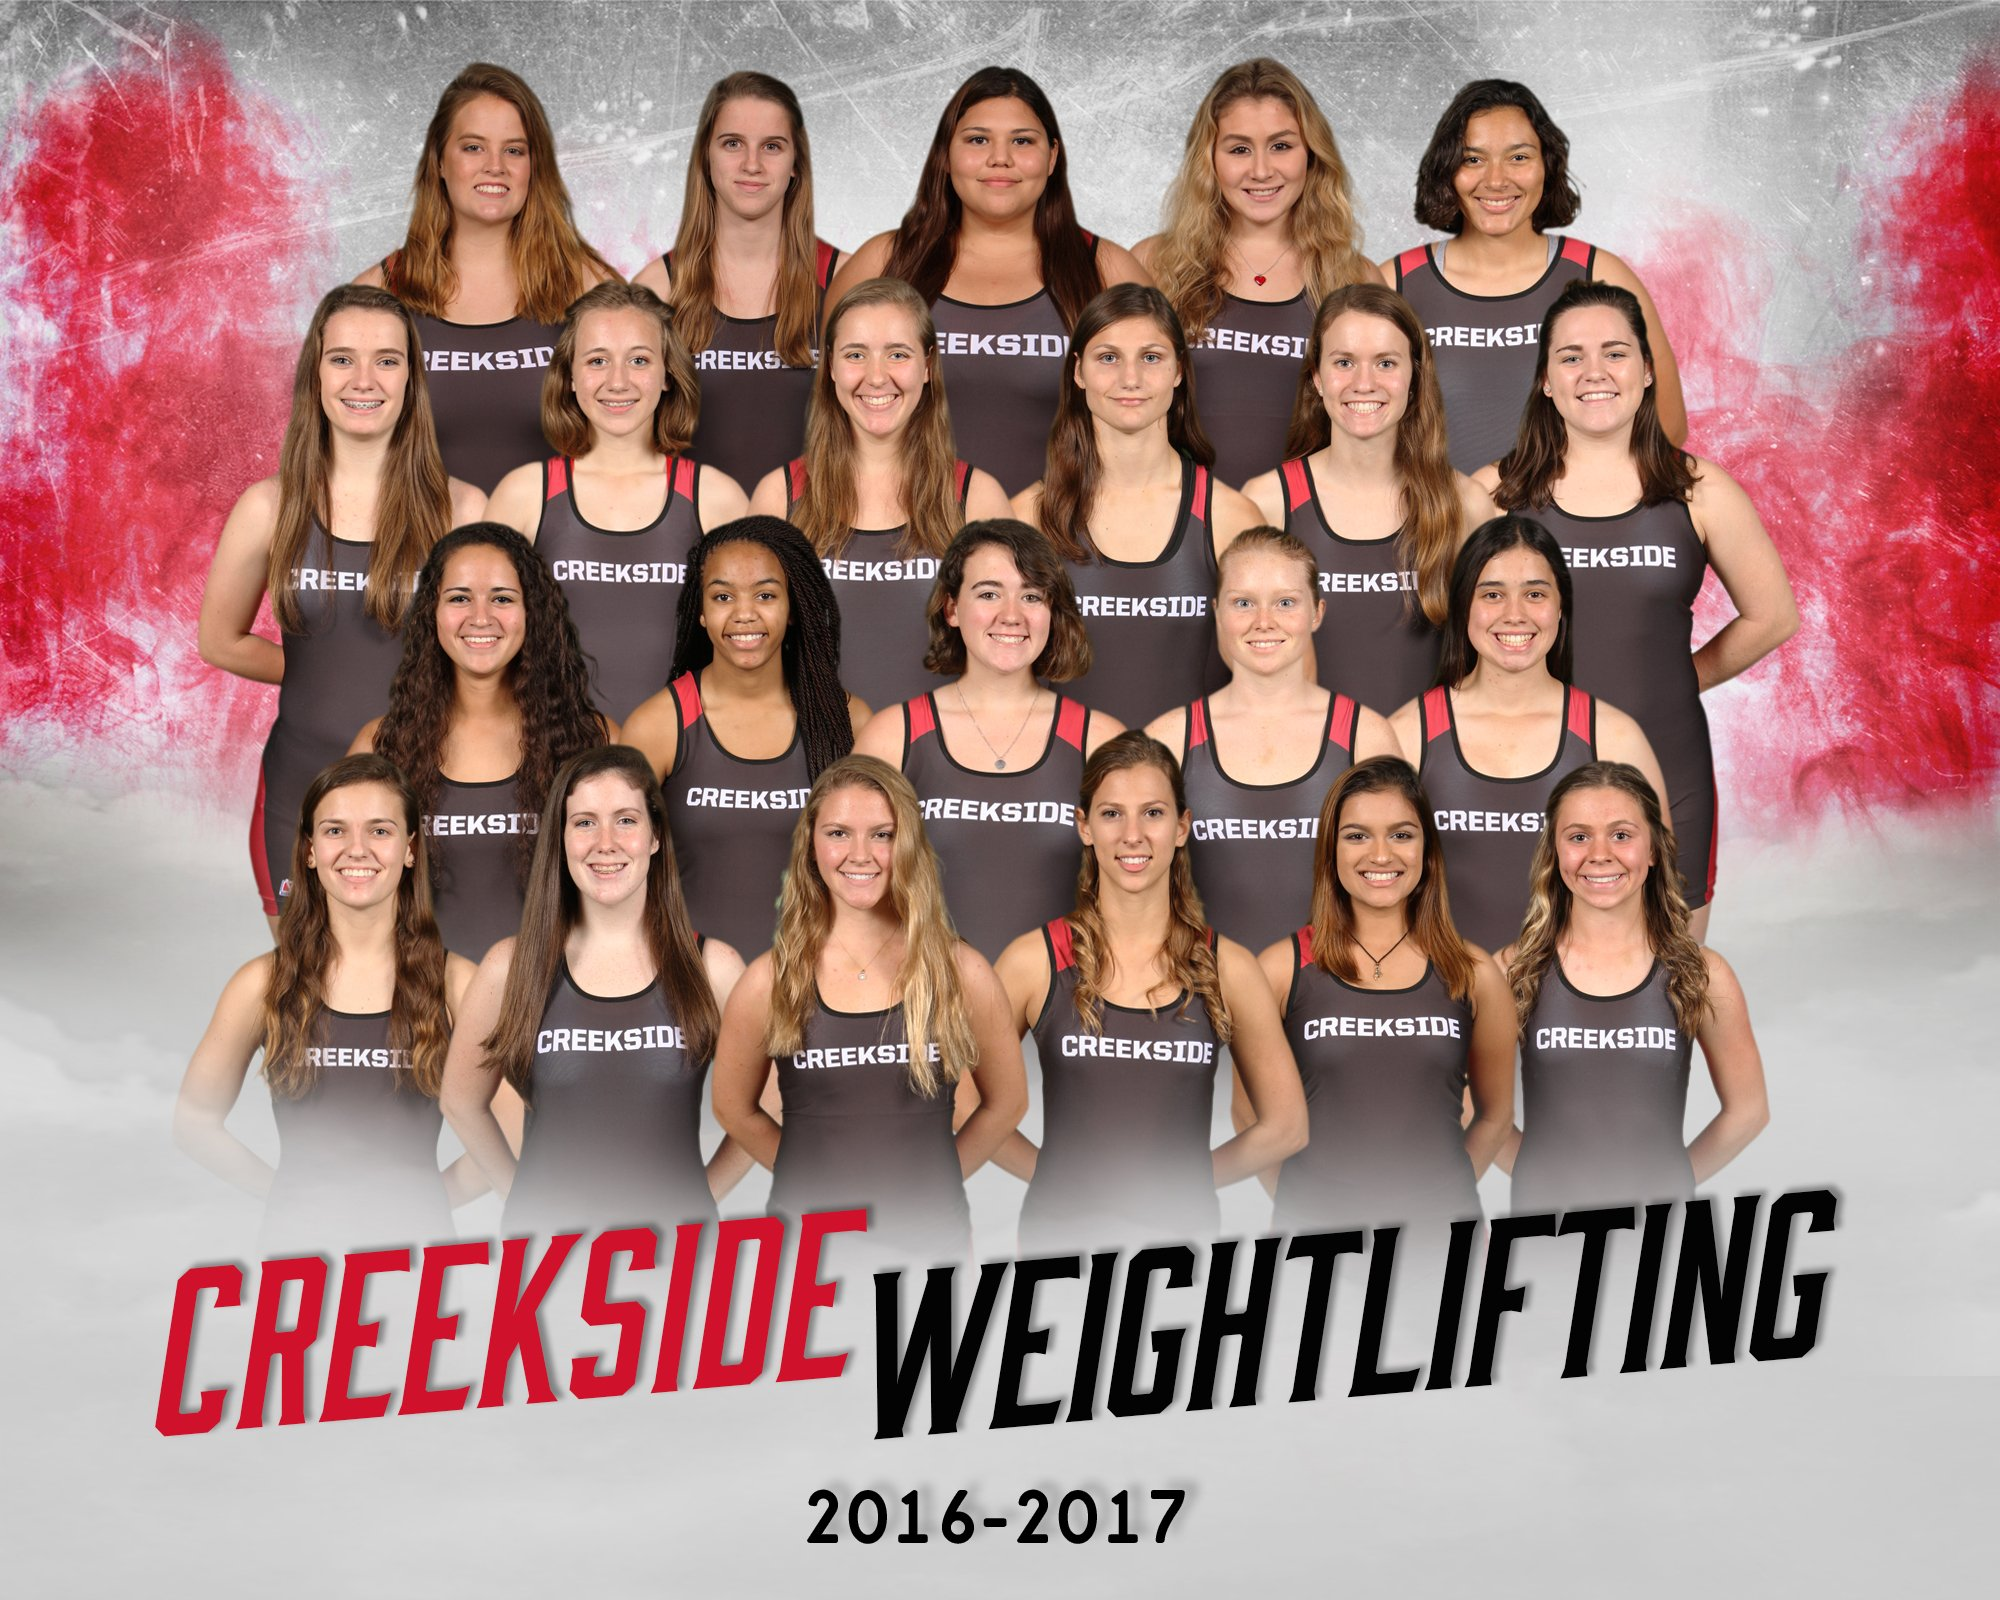 2016-17 Creekside_Weightlifting